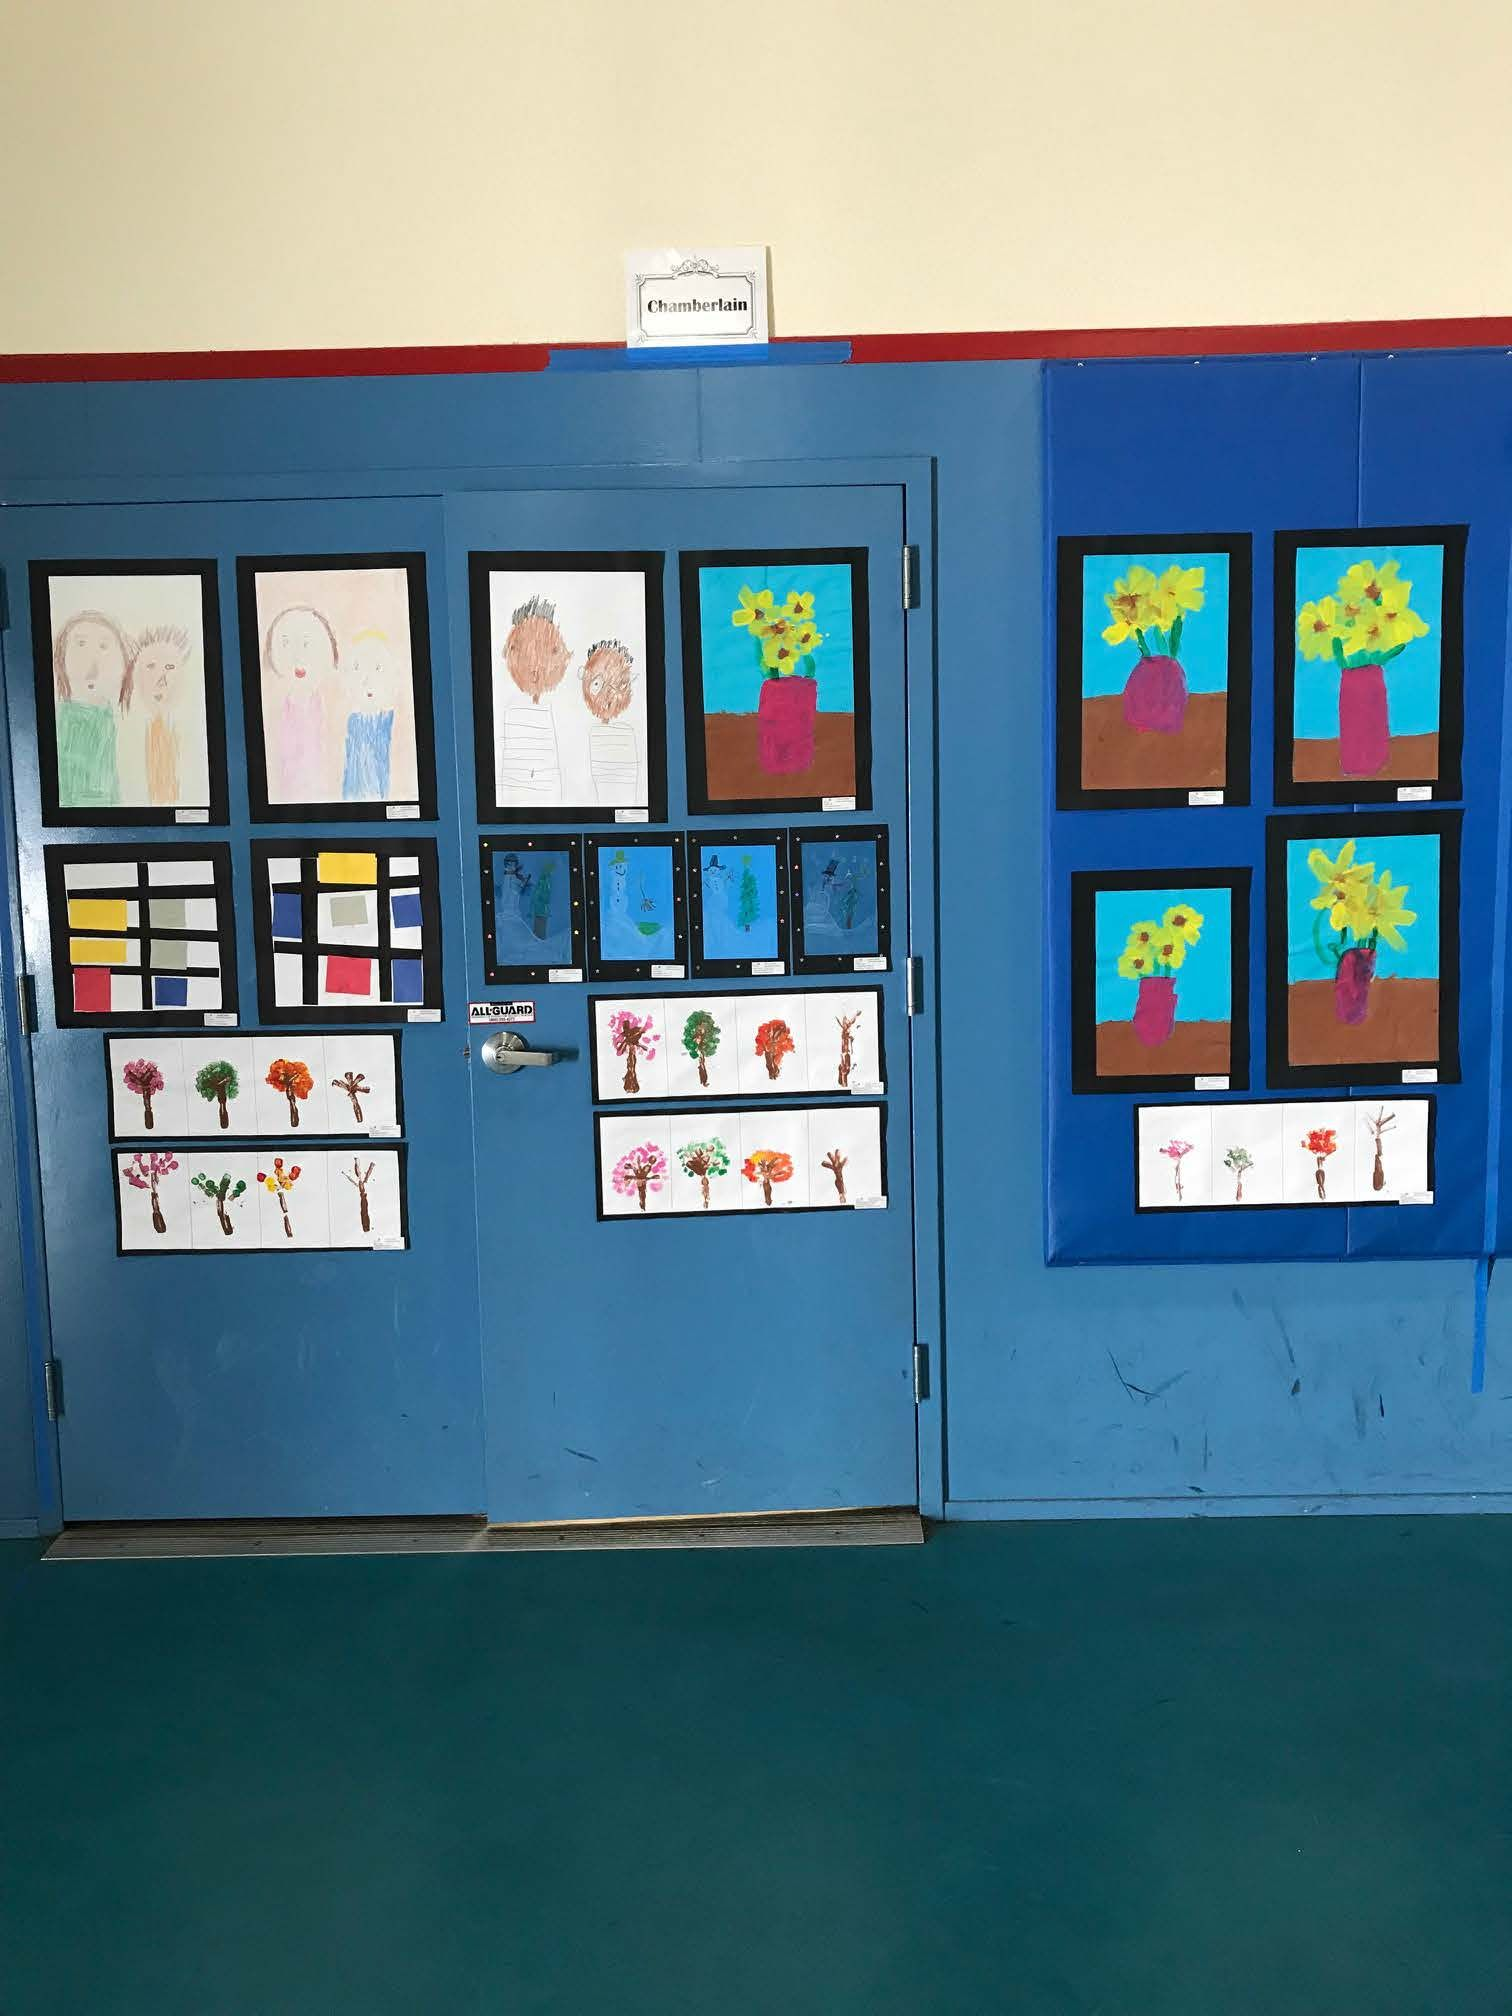 Kindergarten class paintings, mrs. Charmberlain